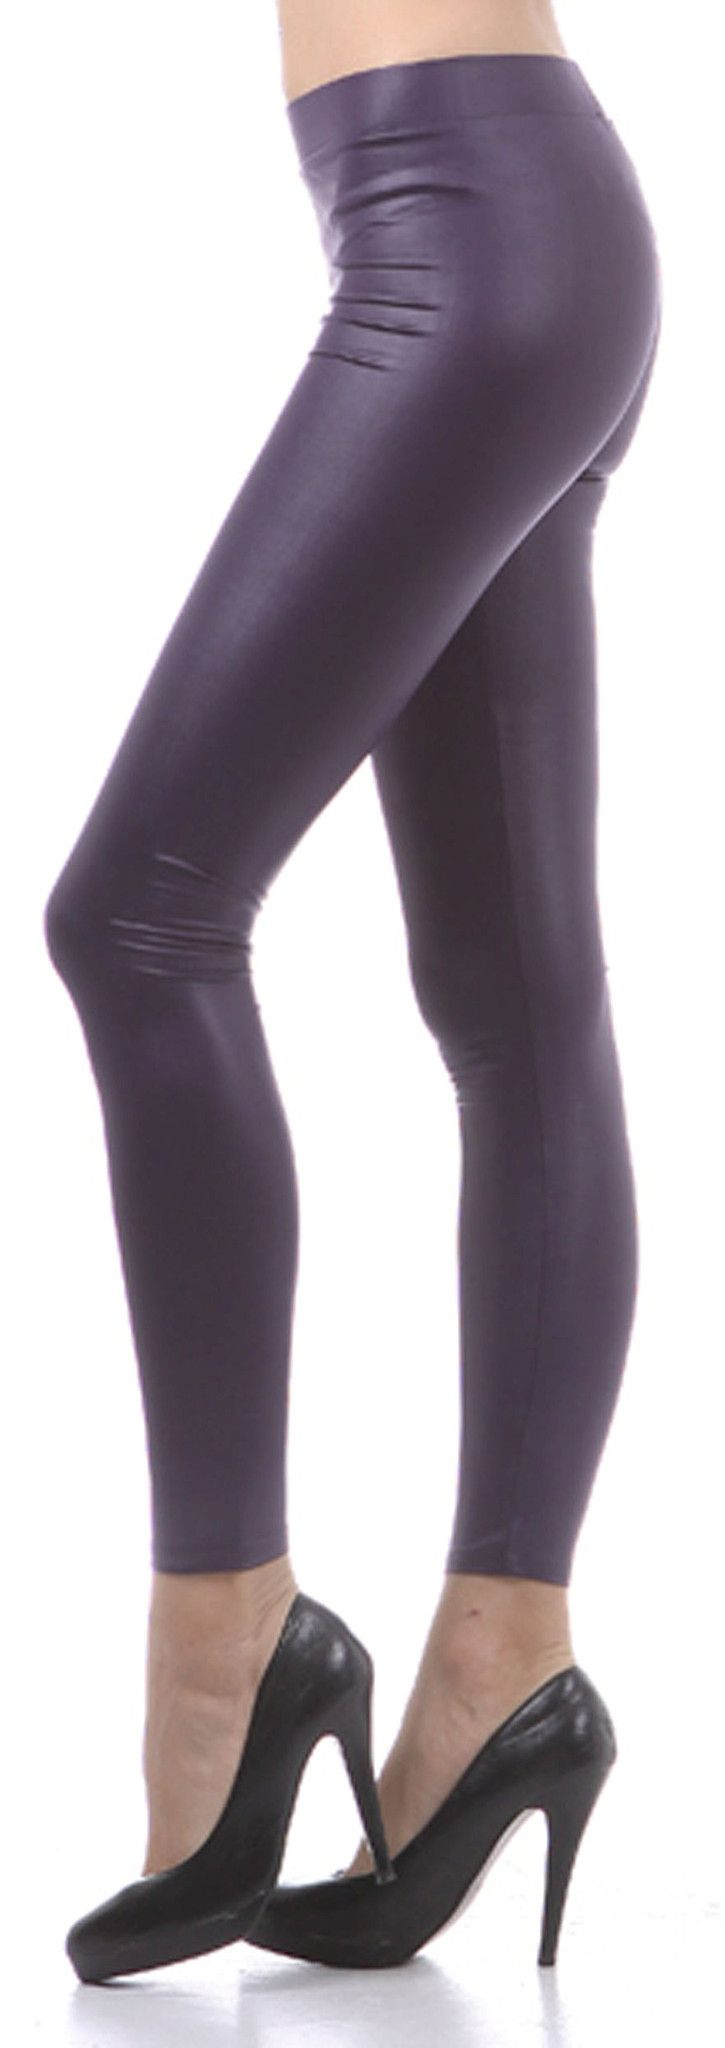 Small ( Size 2-4 ), Medium ( Size 6-8 ), Large ( Size 10-12 ), X-Large(14-16) Features Matte Liquid Sheen Fabric, Ultra Slim Fit ( very limited stretch to these leggings, please check your measurement